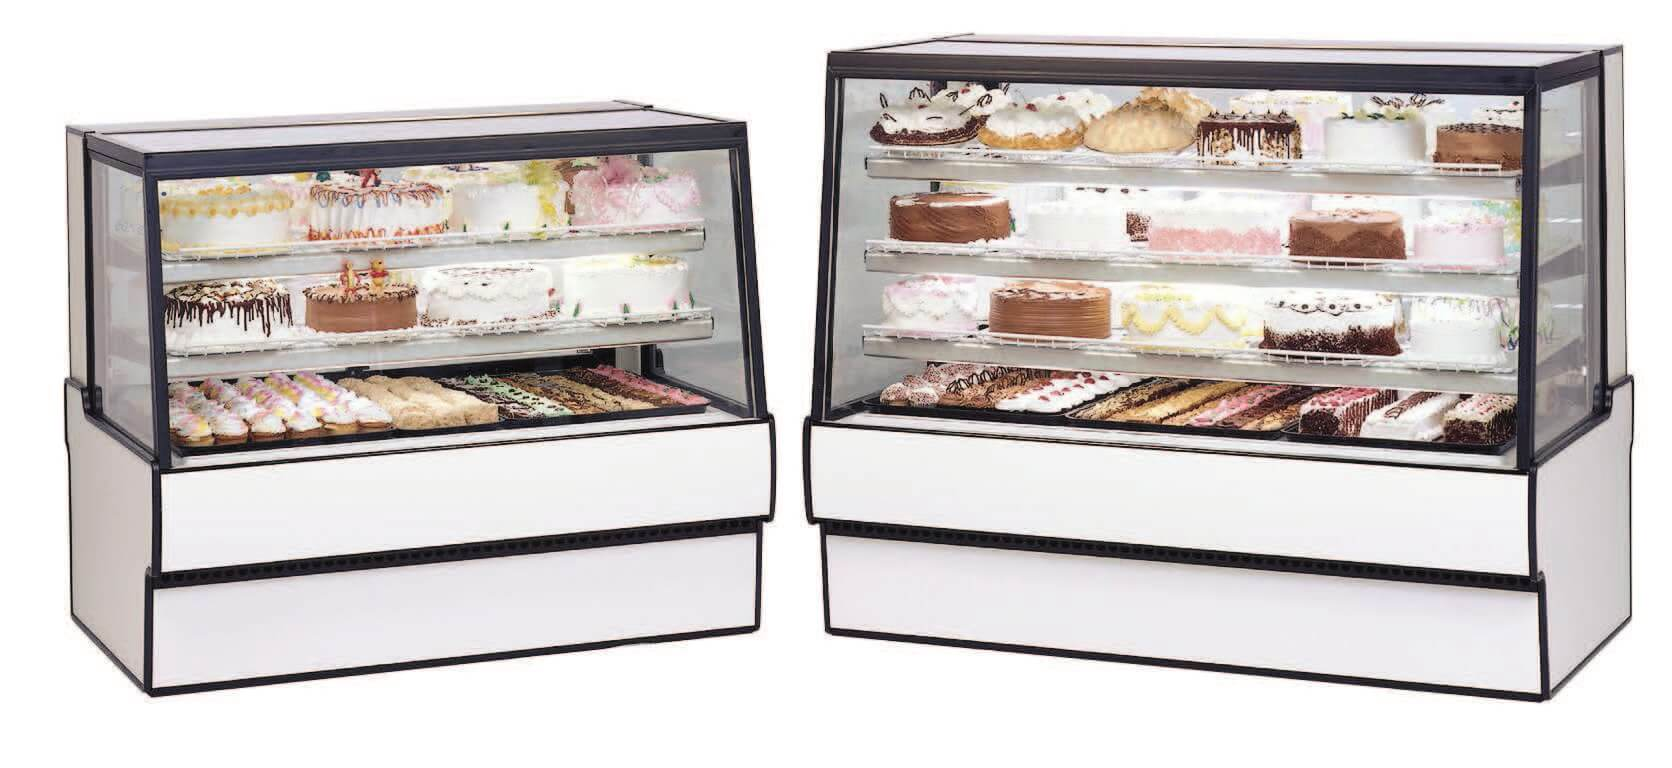 sgr3142-high-volume-refrigerated-bakery-case[1]